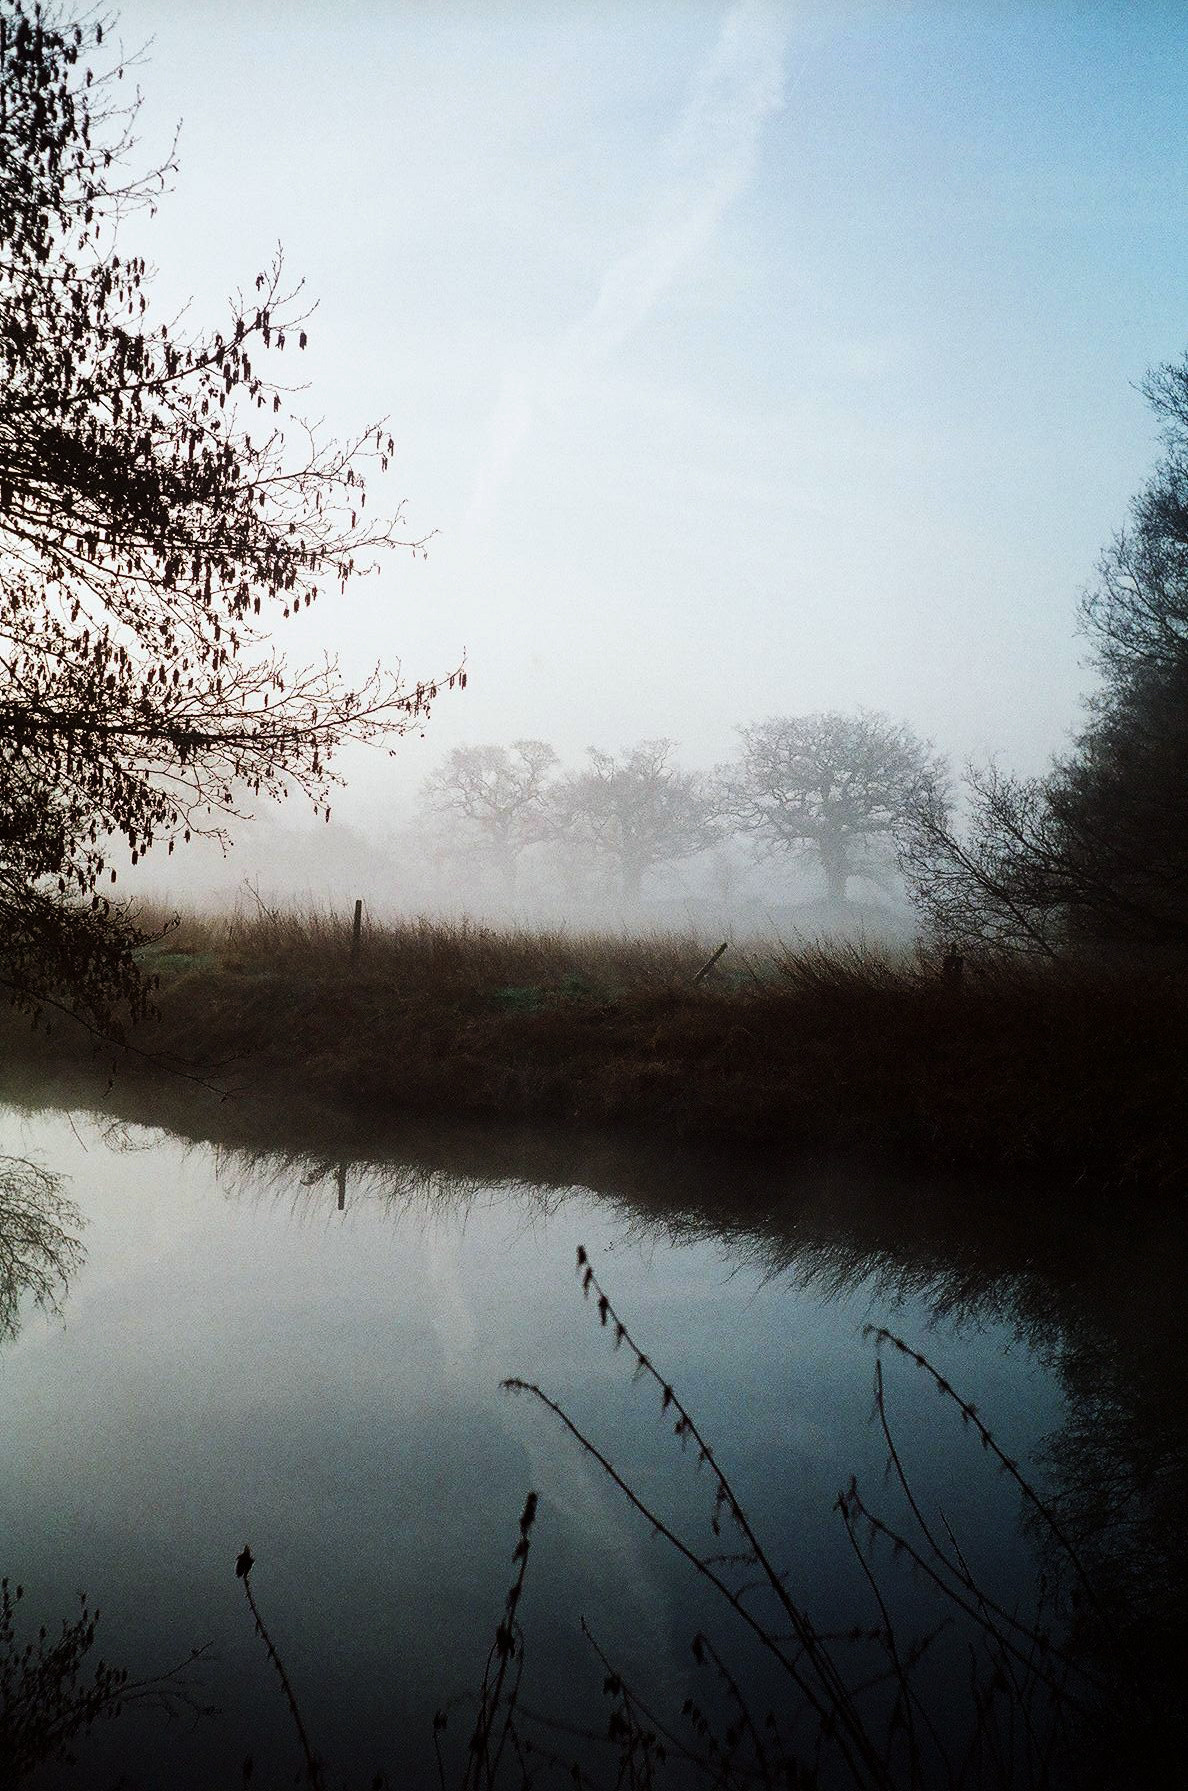 Esher, Surrey. Olympus Trip, expired film and a misty morning :)